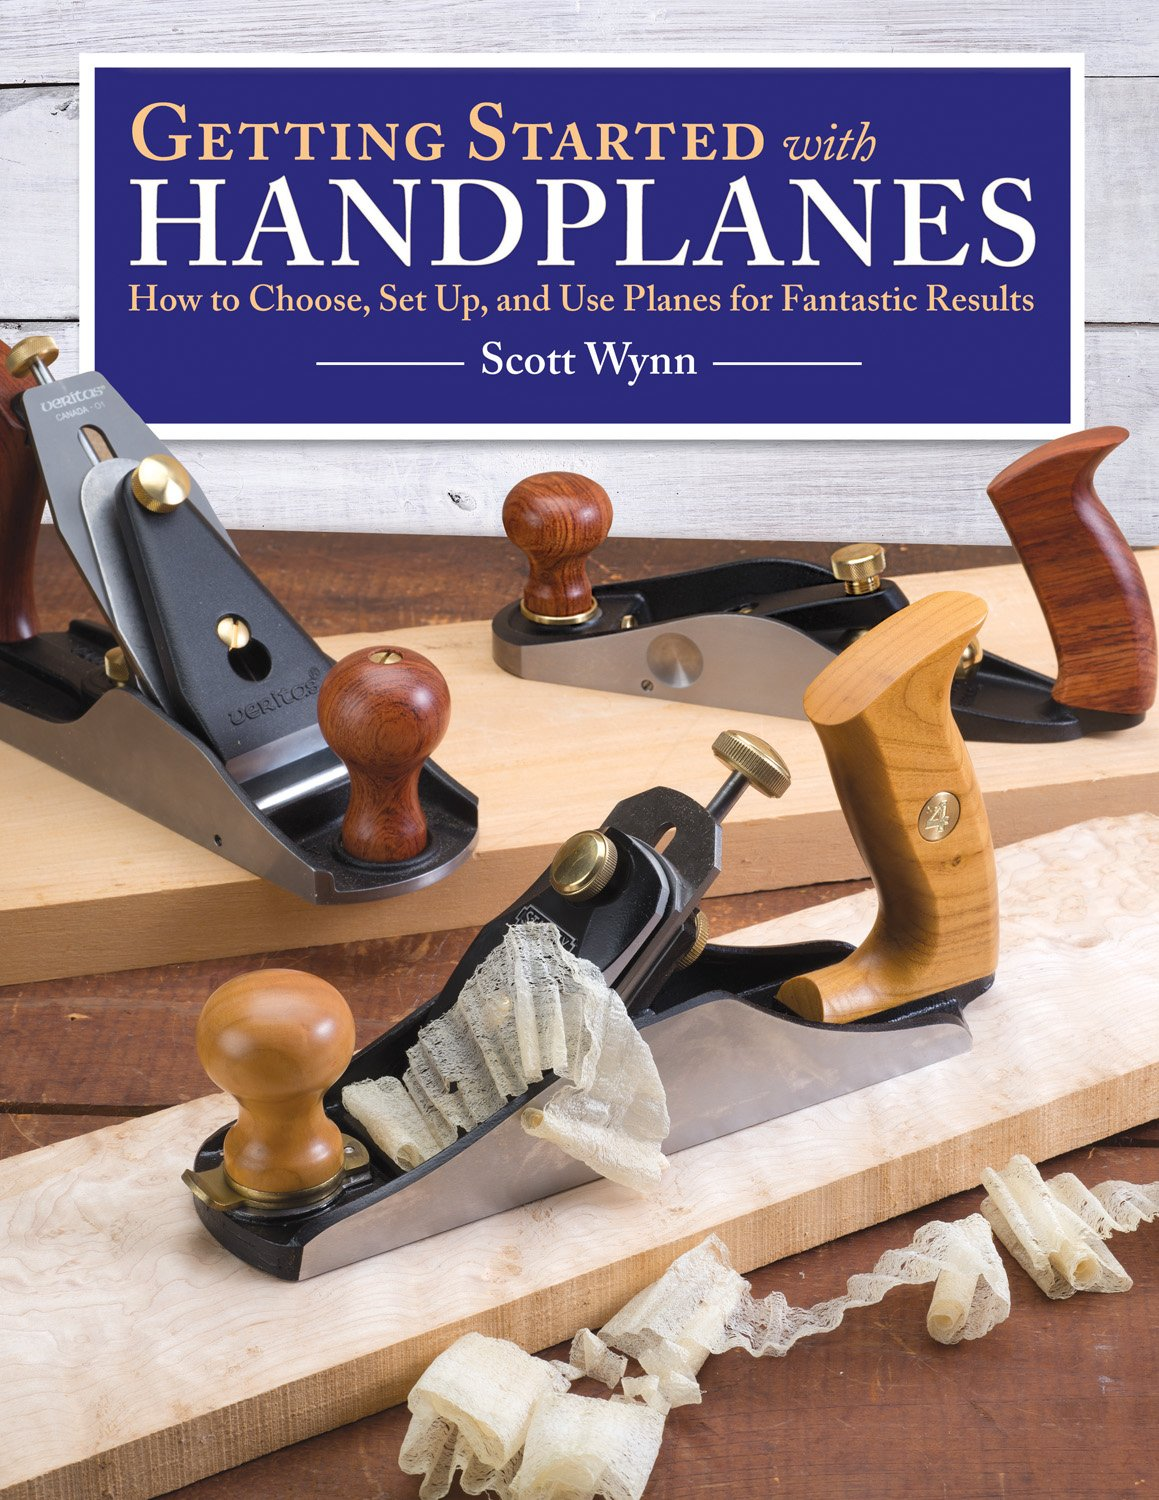 Getting Started with Handplanes: How to Choose, Set Up, and Use Planes for Fantastic Results